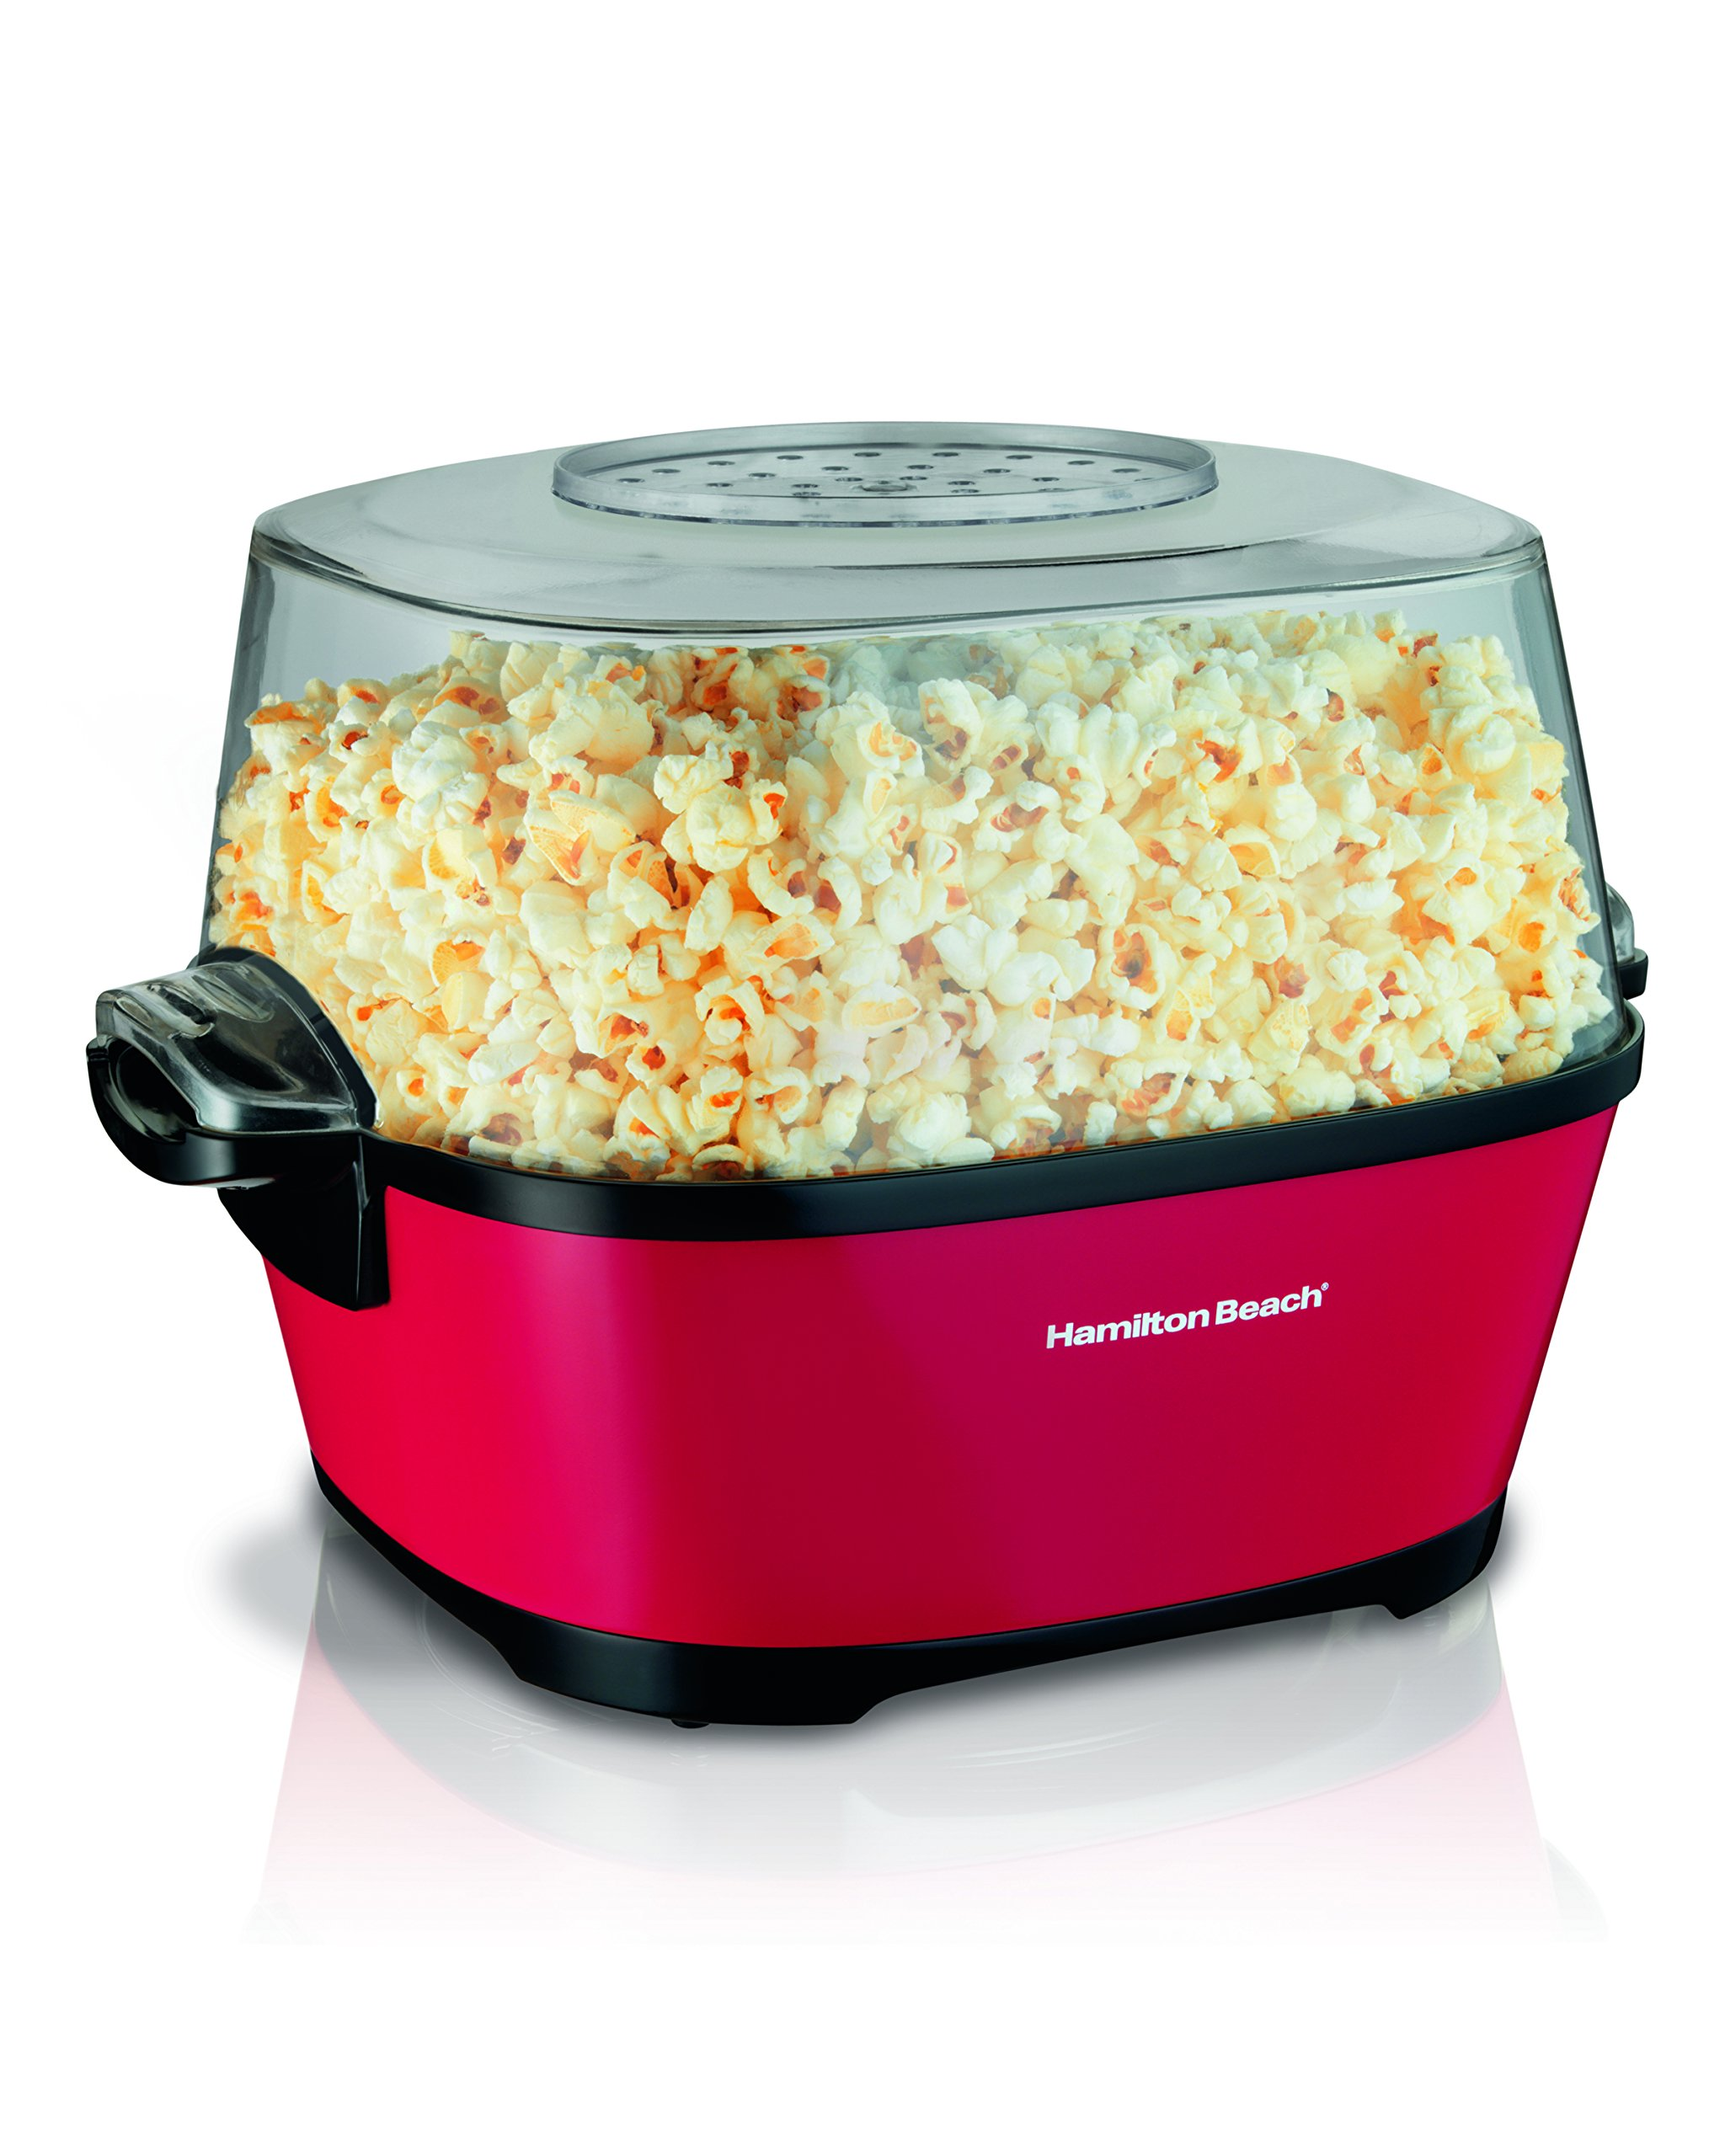 Hamilton Beach Electric Hot Oil Popcorn Popper, Healthy Snack Maker, 24 Cups, Red (73302) by Hamilton Beach